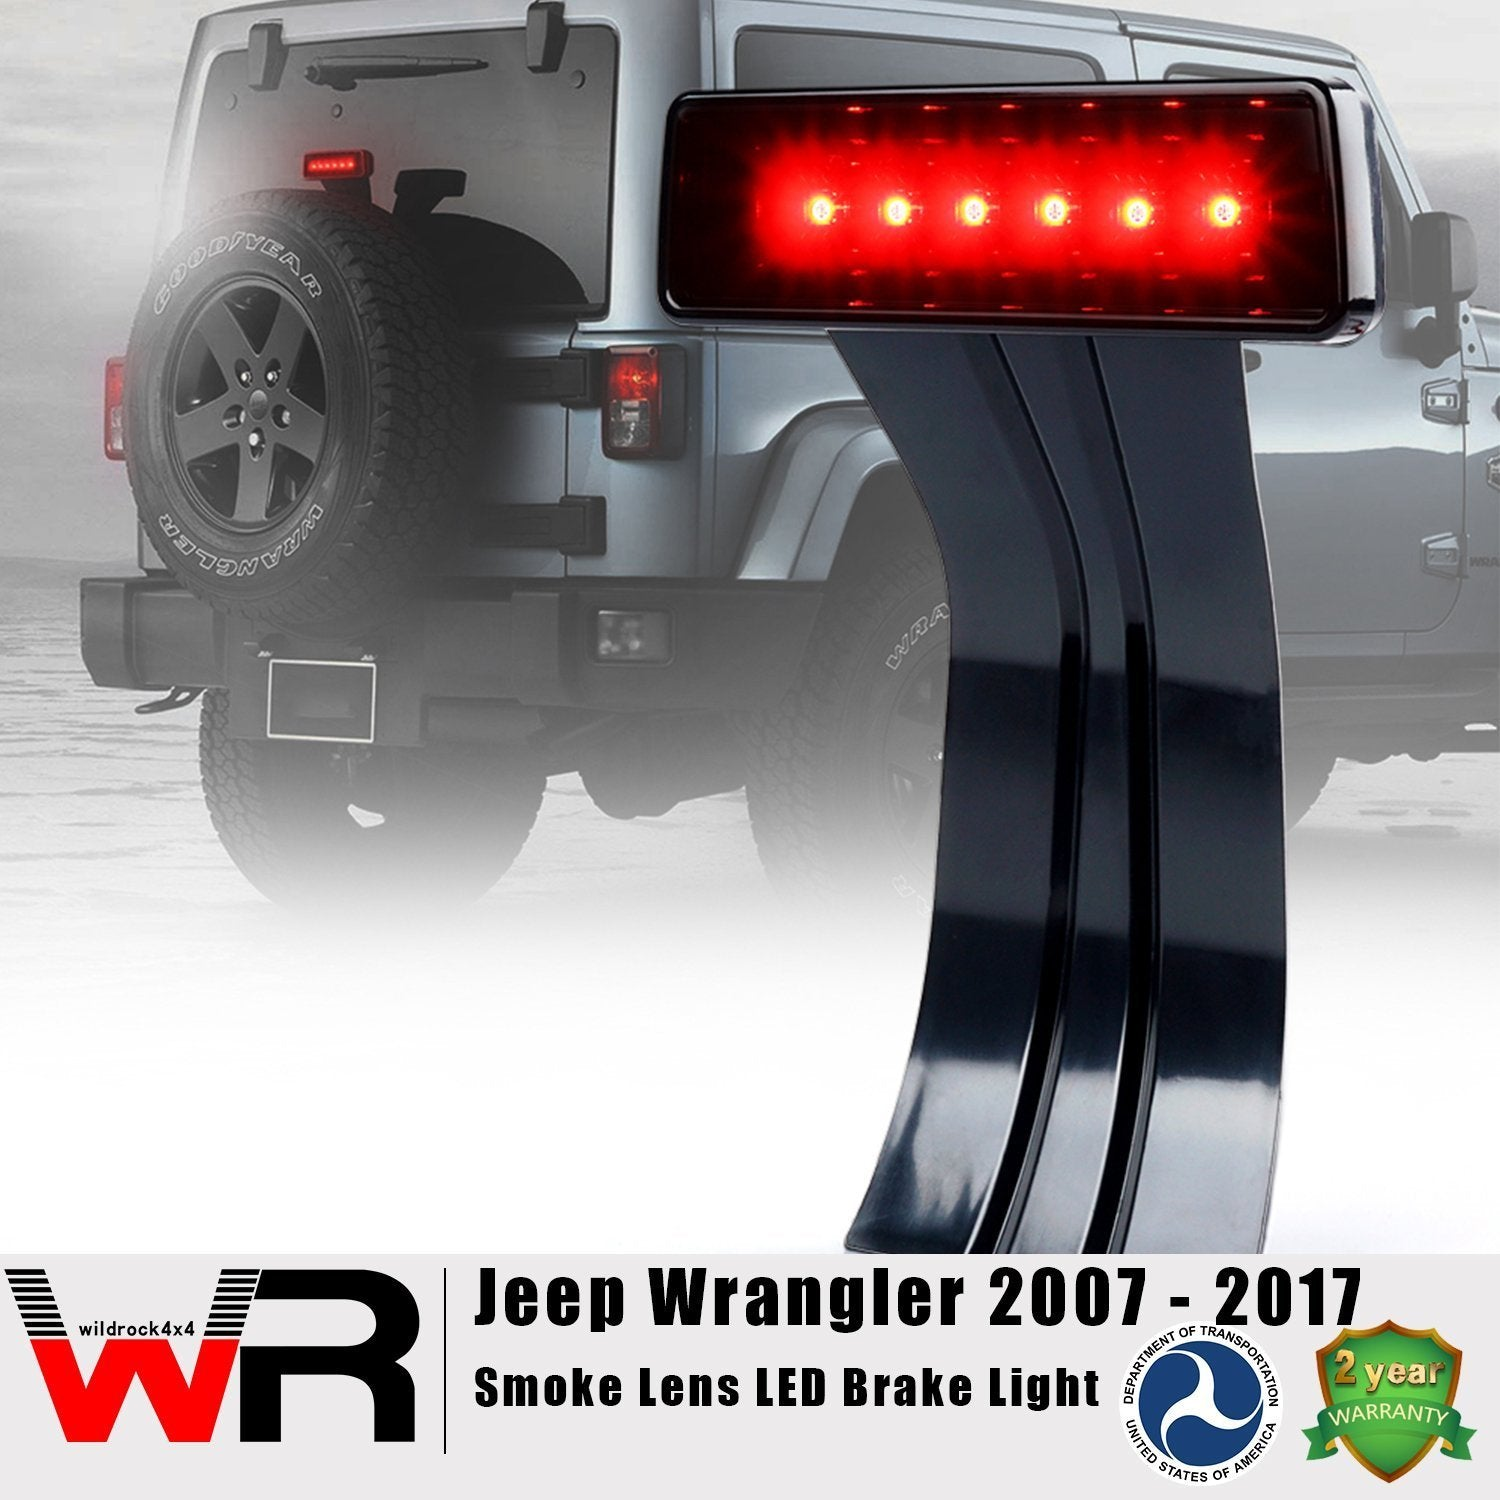 Smoked LED Third Brake Light for Jeep Wrangler JK 07-17